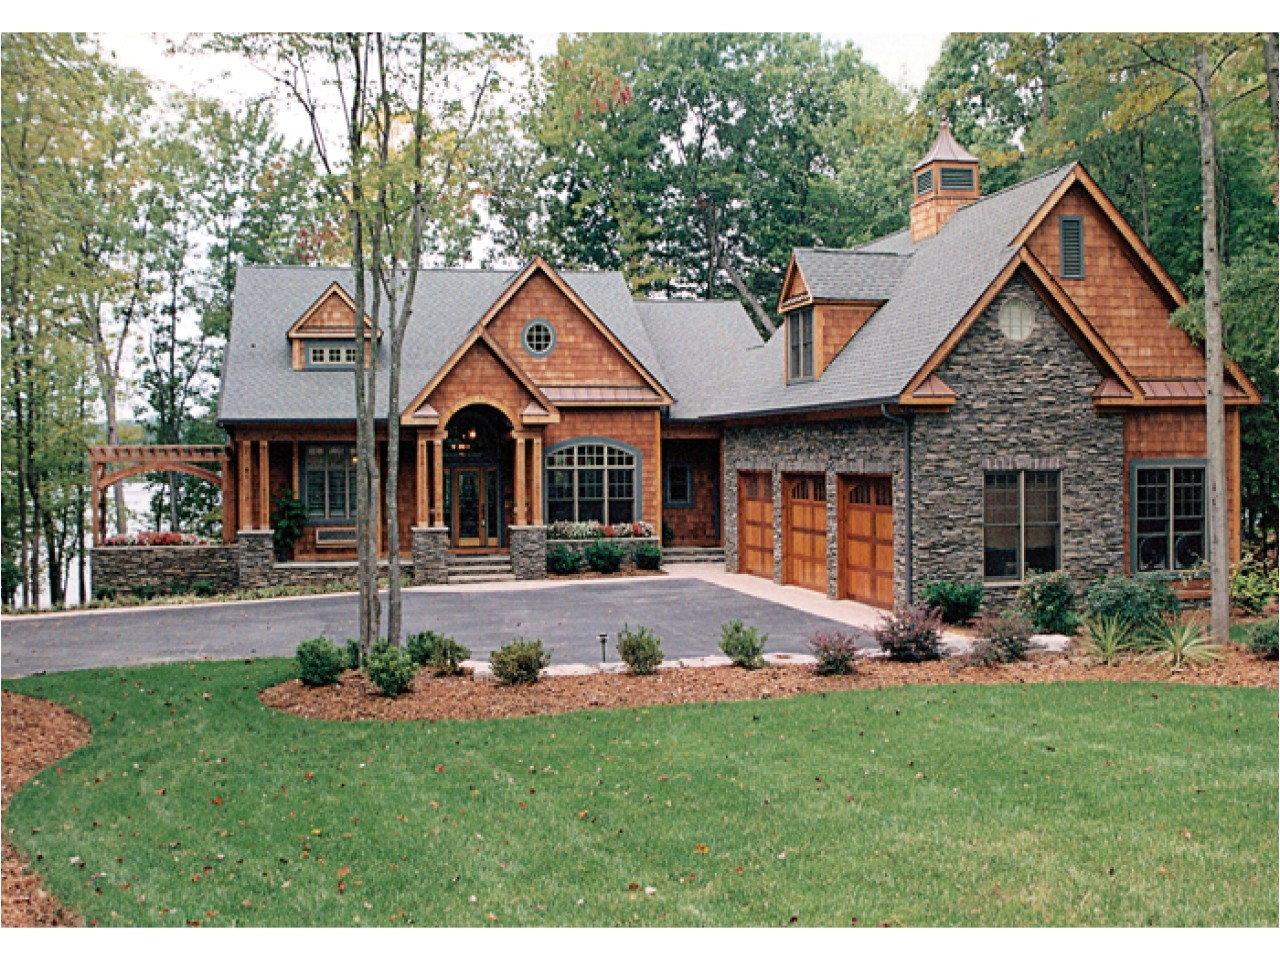 Craftsmans Style House Plans Craftsman House Plans Lake Homes View Plans Lake House